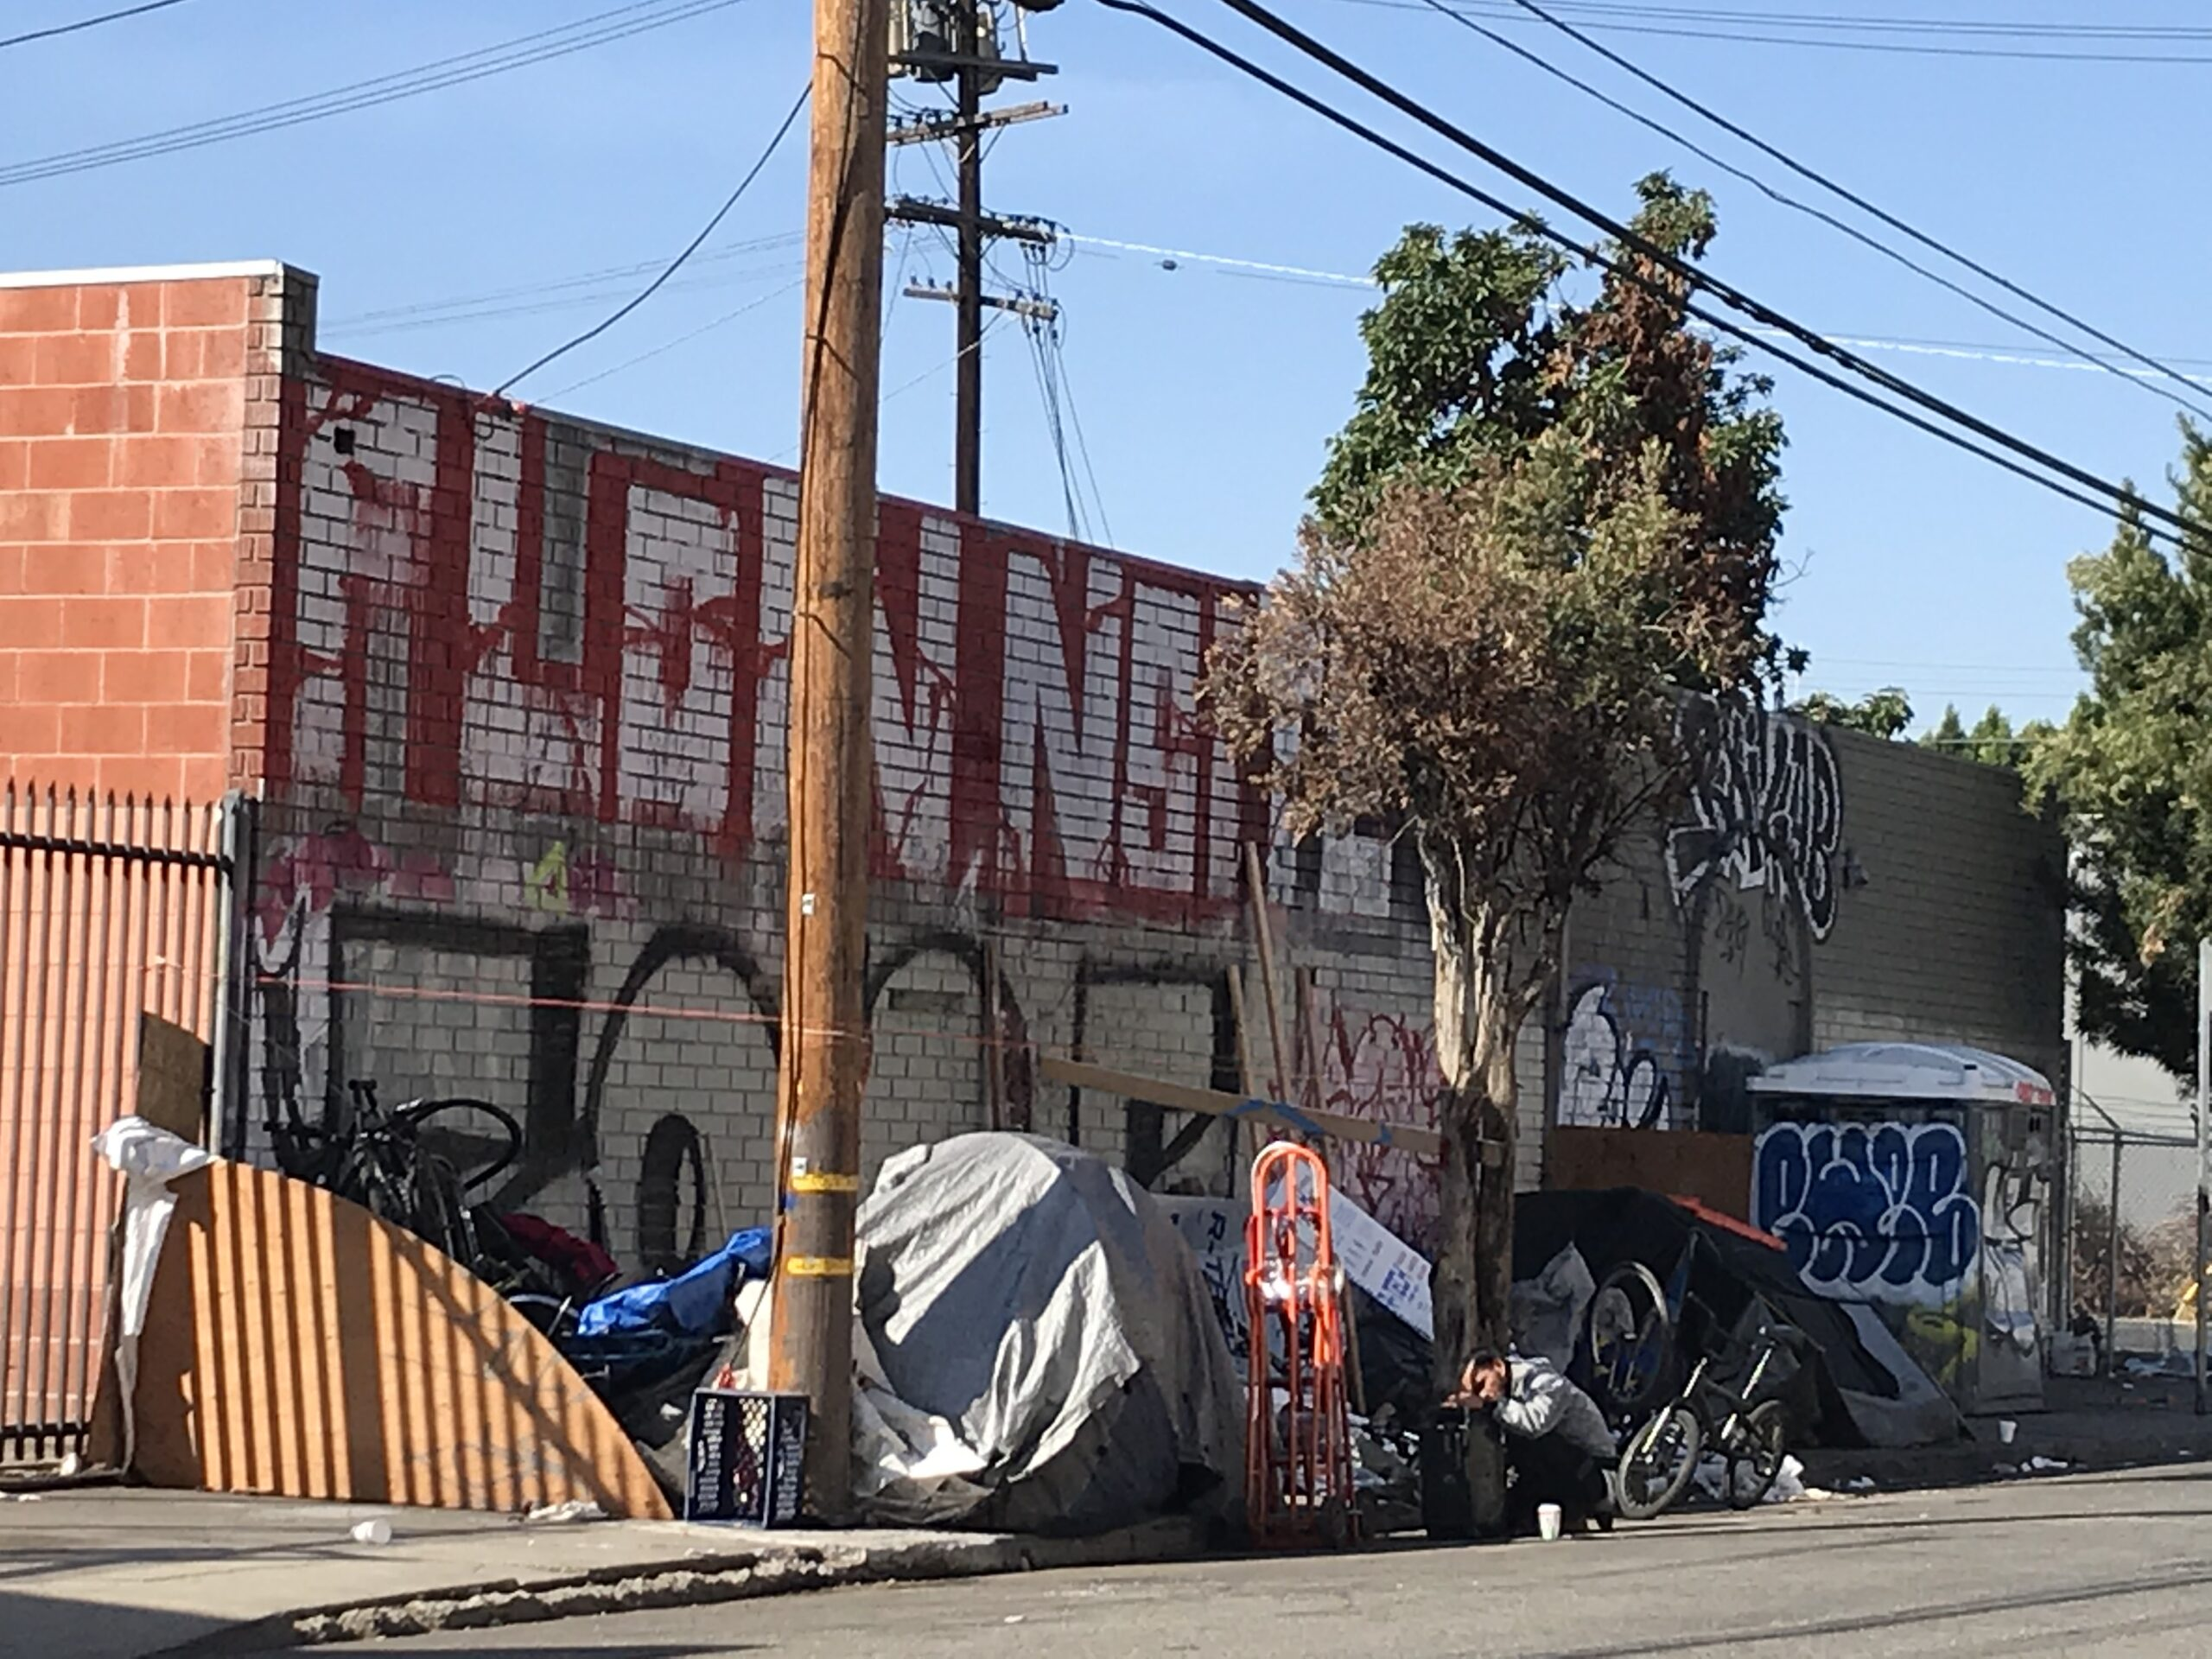 Protest Vote for Trump | LA Pays, Homeless Die | De Leon Clams Up | Calling Kim for Hope of City | Zocalo's Mission Identical | Miss on Pac Life | Pimco's Point